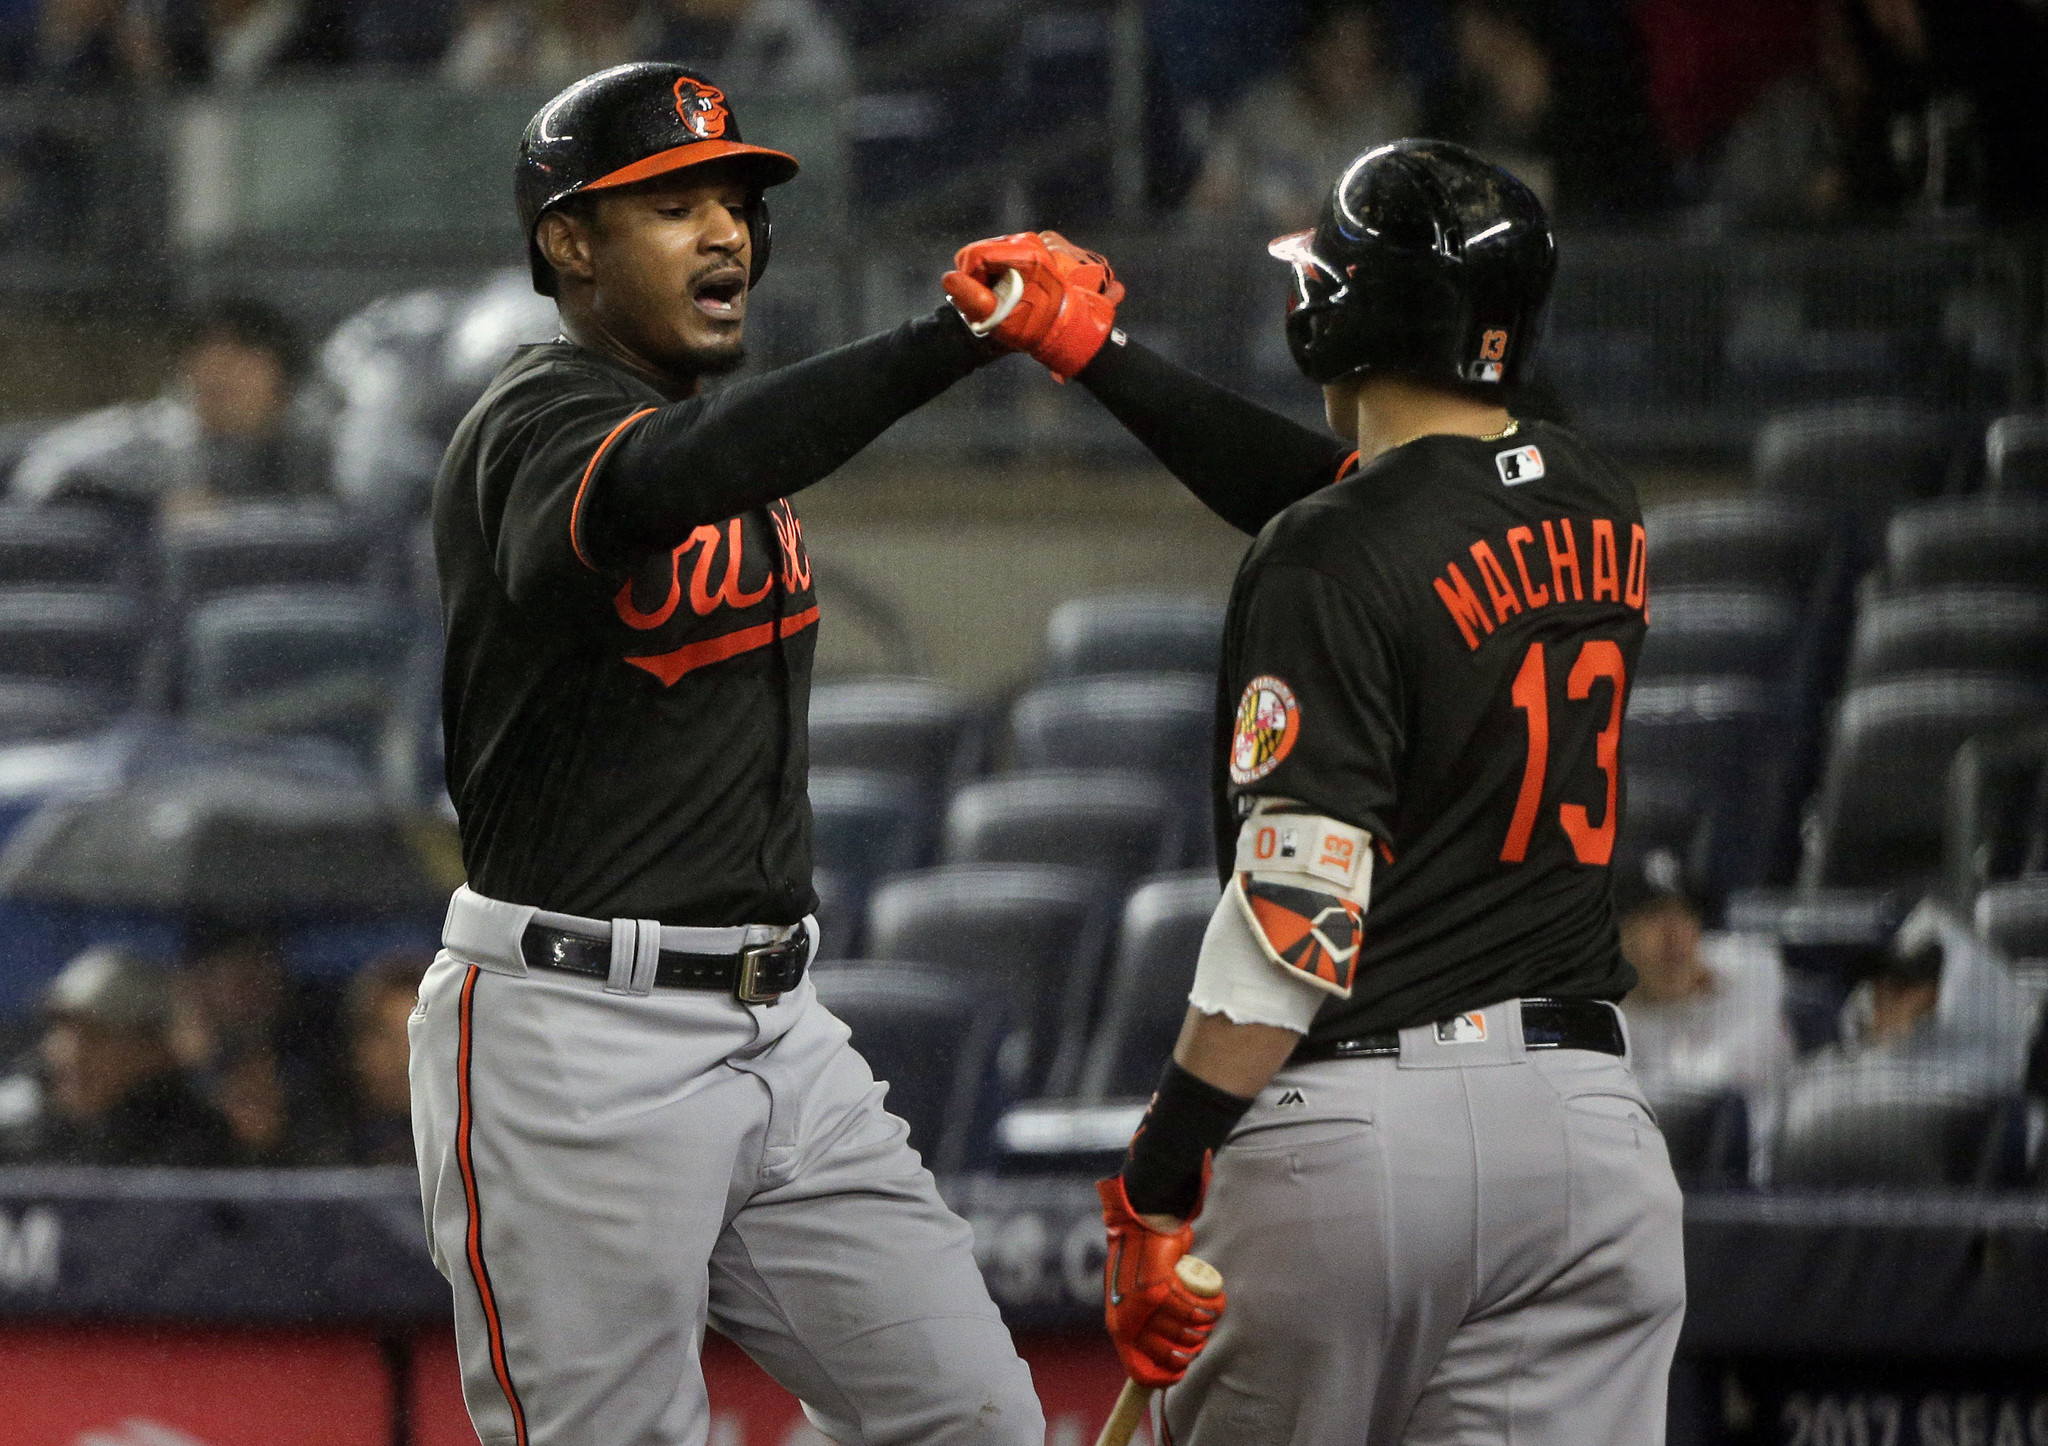 Bal-orioles-recap-birds-move-closer-to-wild-card-berth-with-8-1-win-over-yankees-20160930